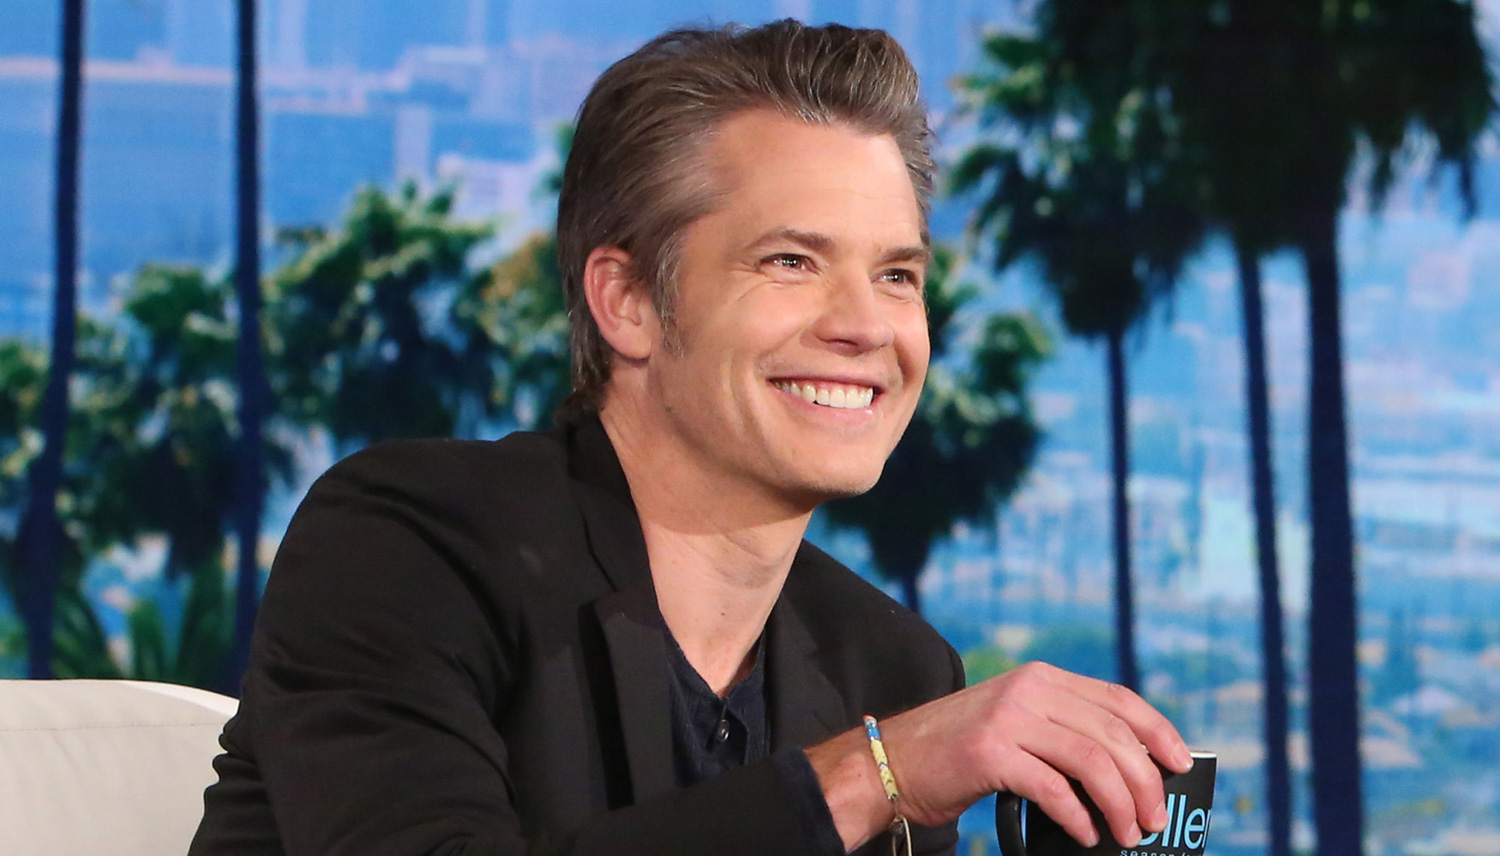 Timothy olyphant height